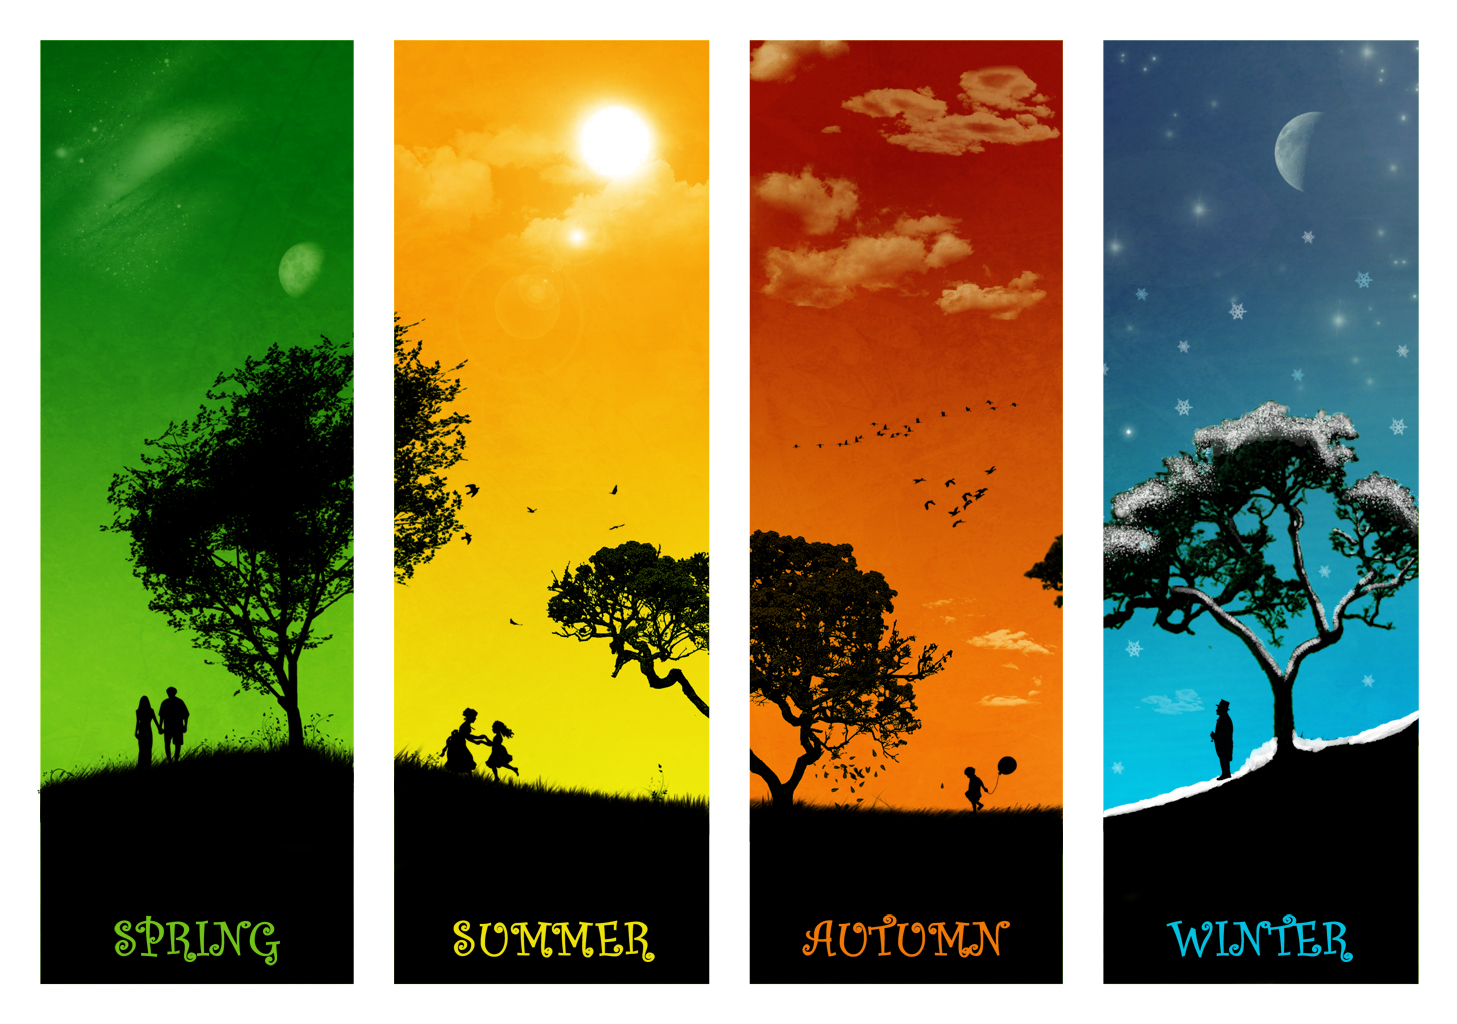 The Four Seasons Summer Winter Spring Autumn